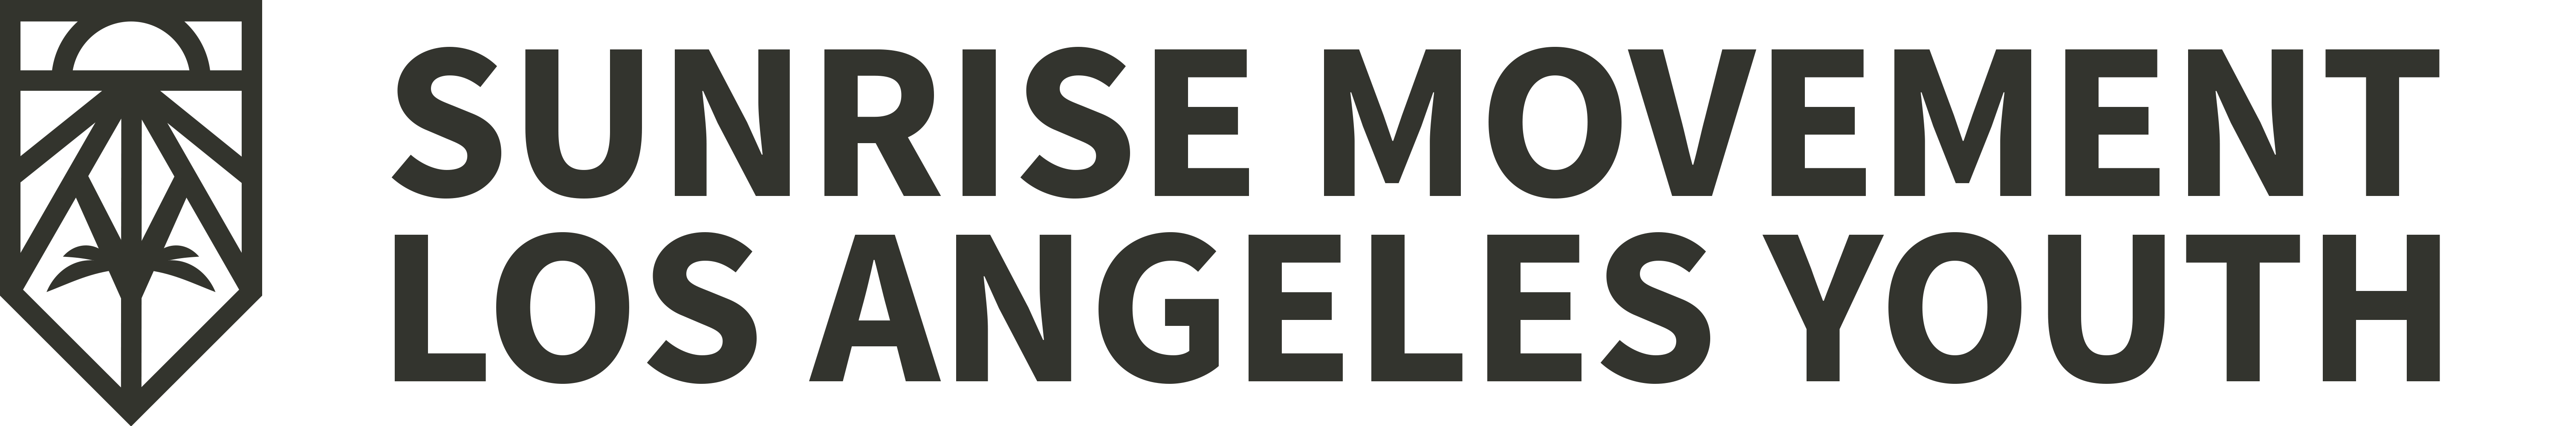 Sunrise Movement Los Angeles Youth Logo